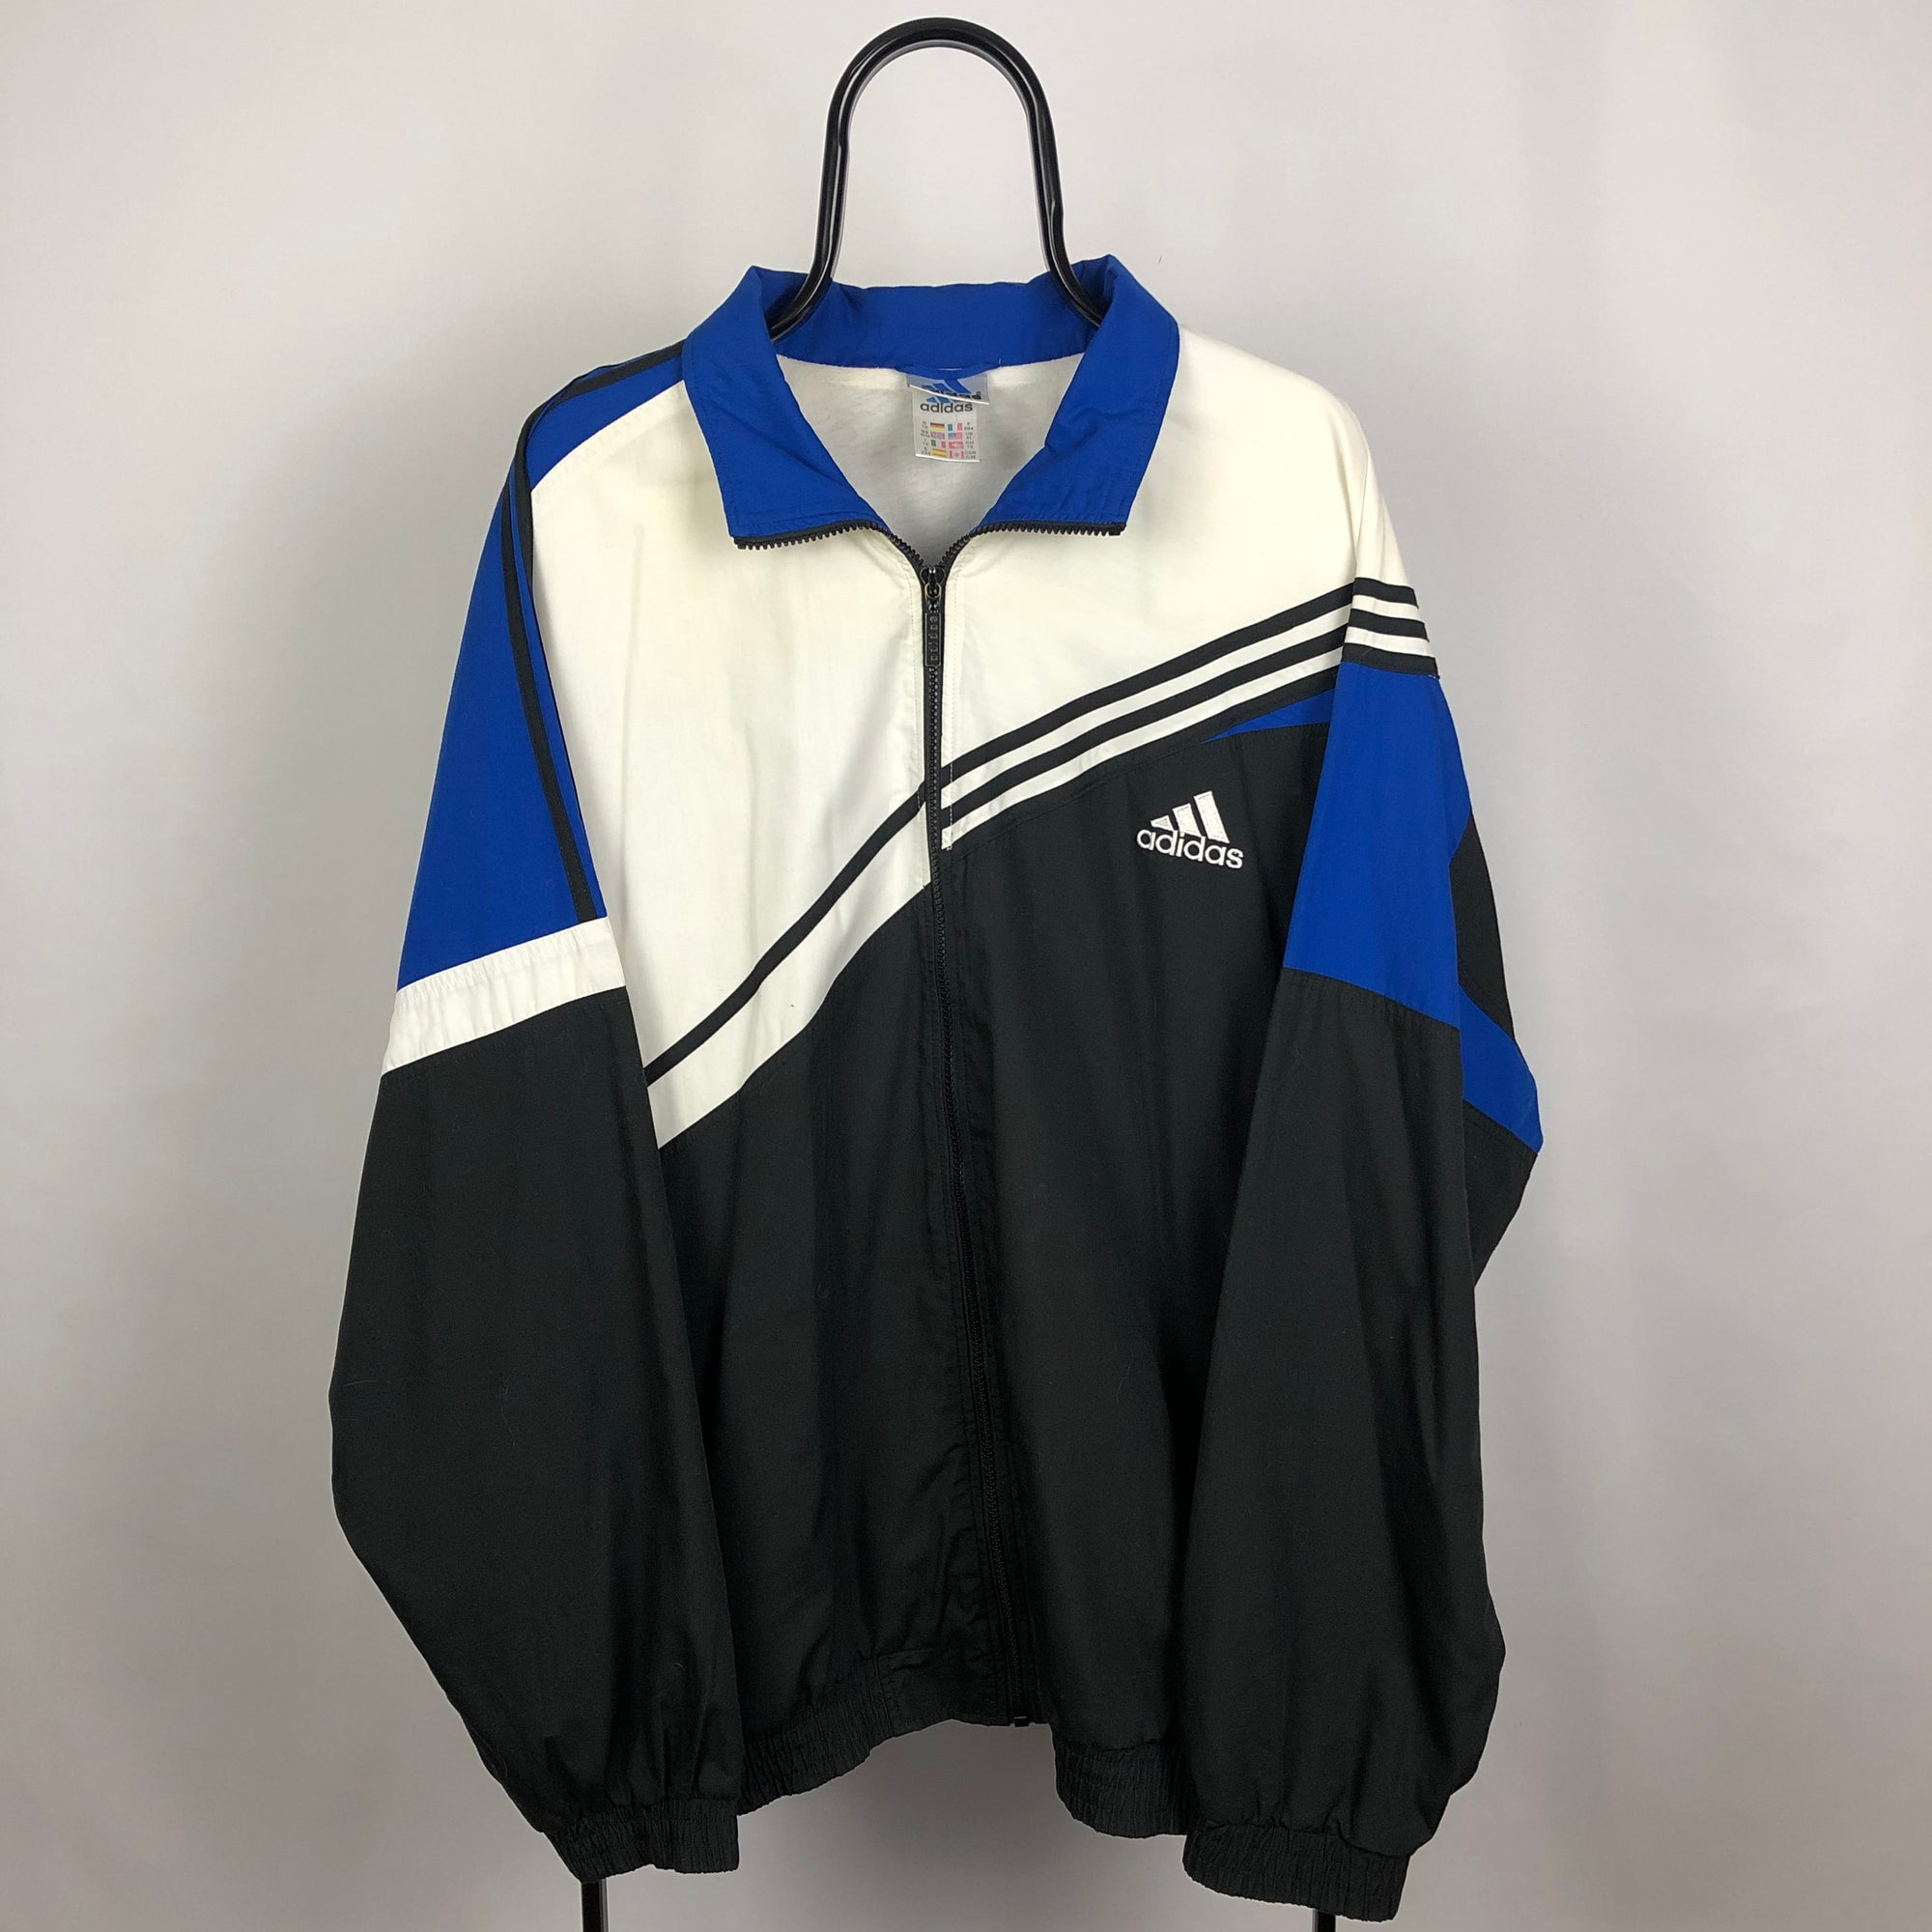 Adidas Track Jacket in Black/White/Blue - Men's XL/Women's XXL